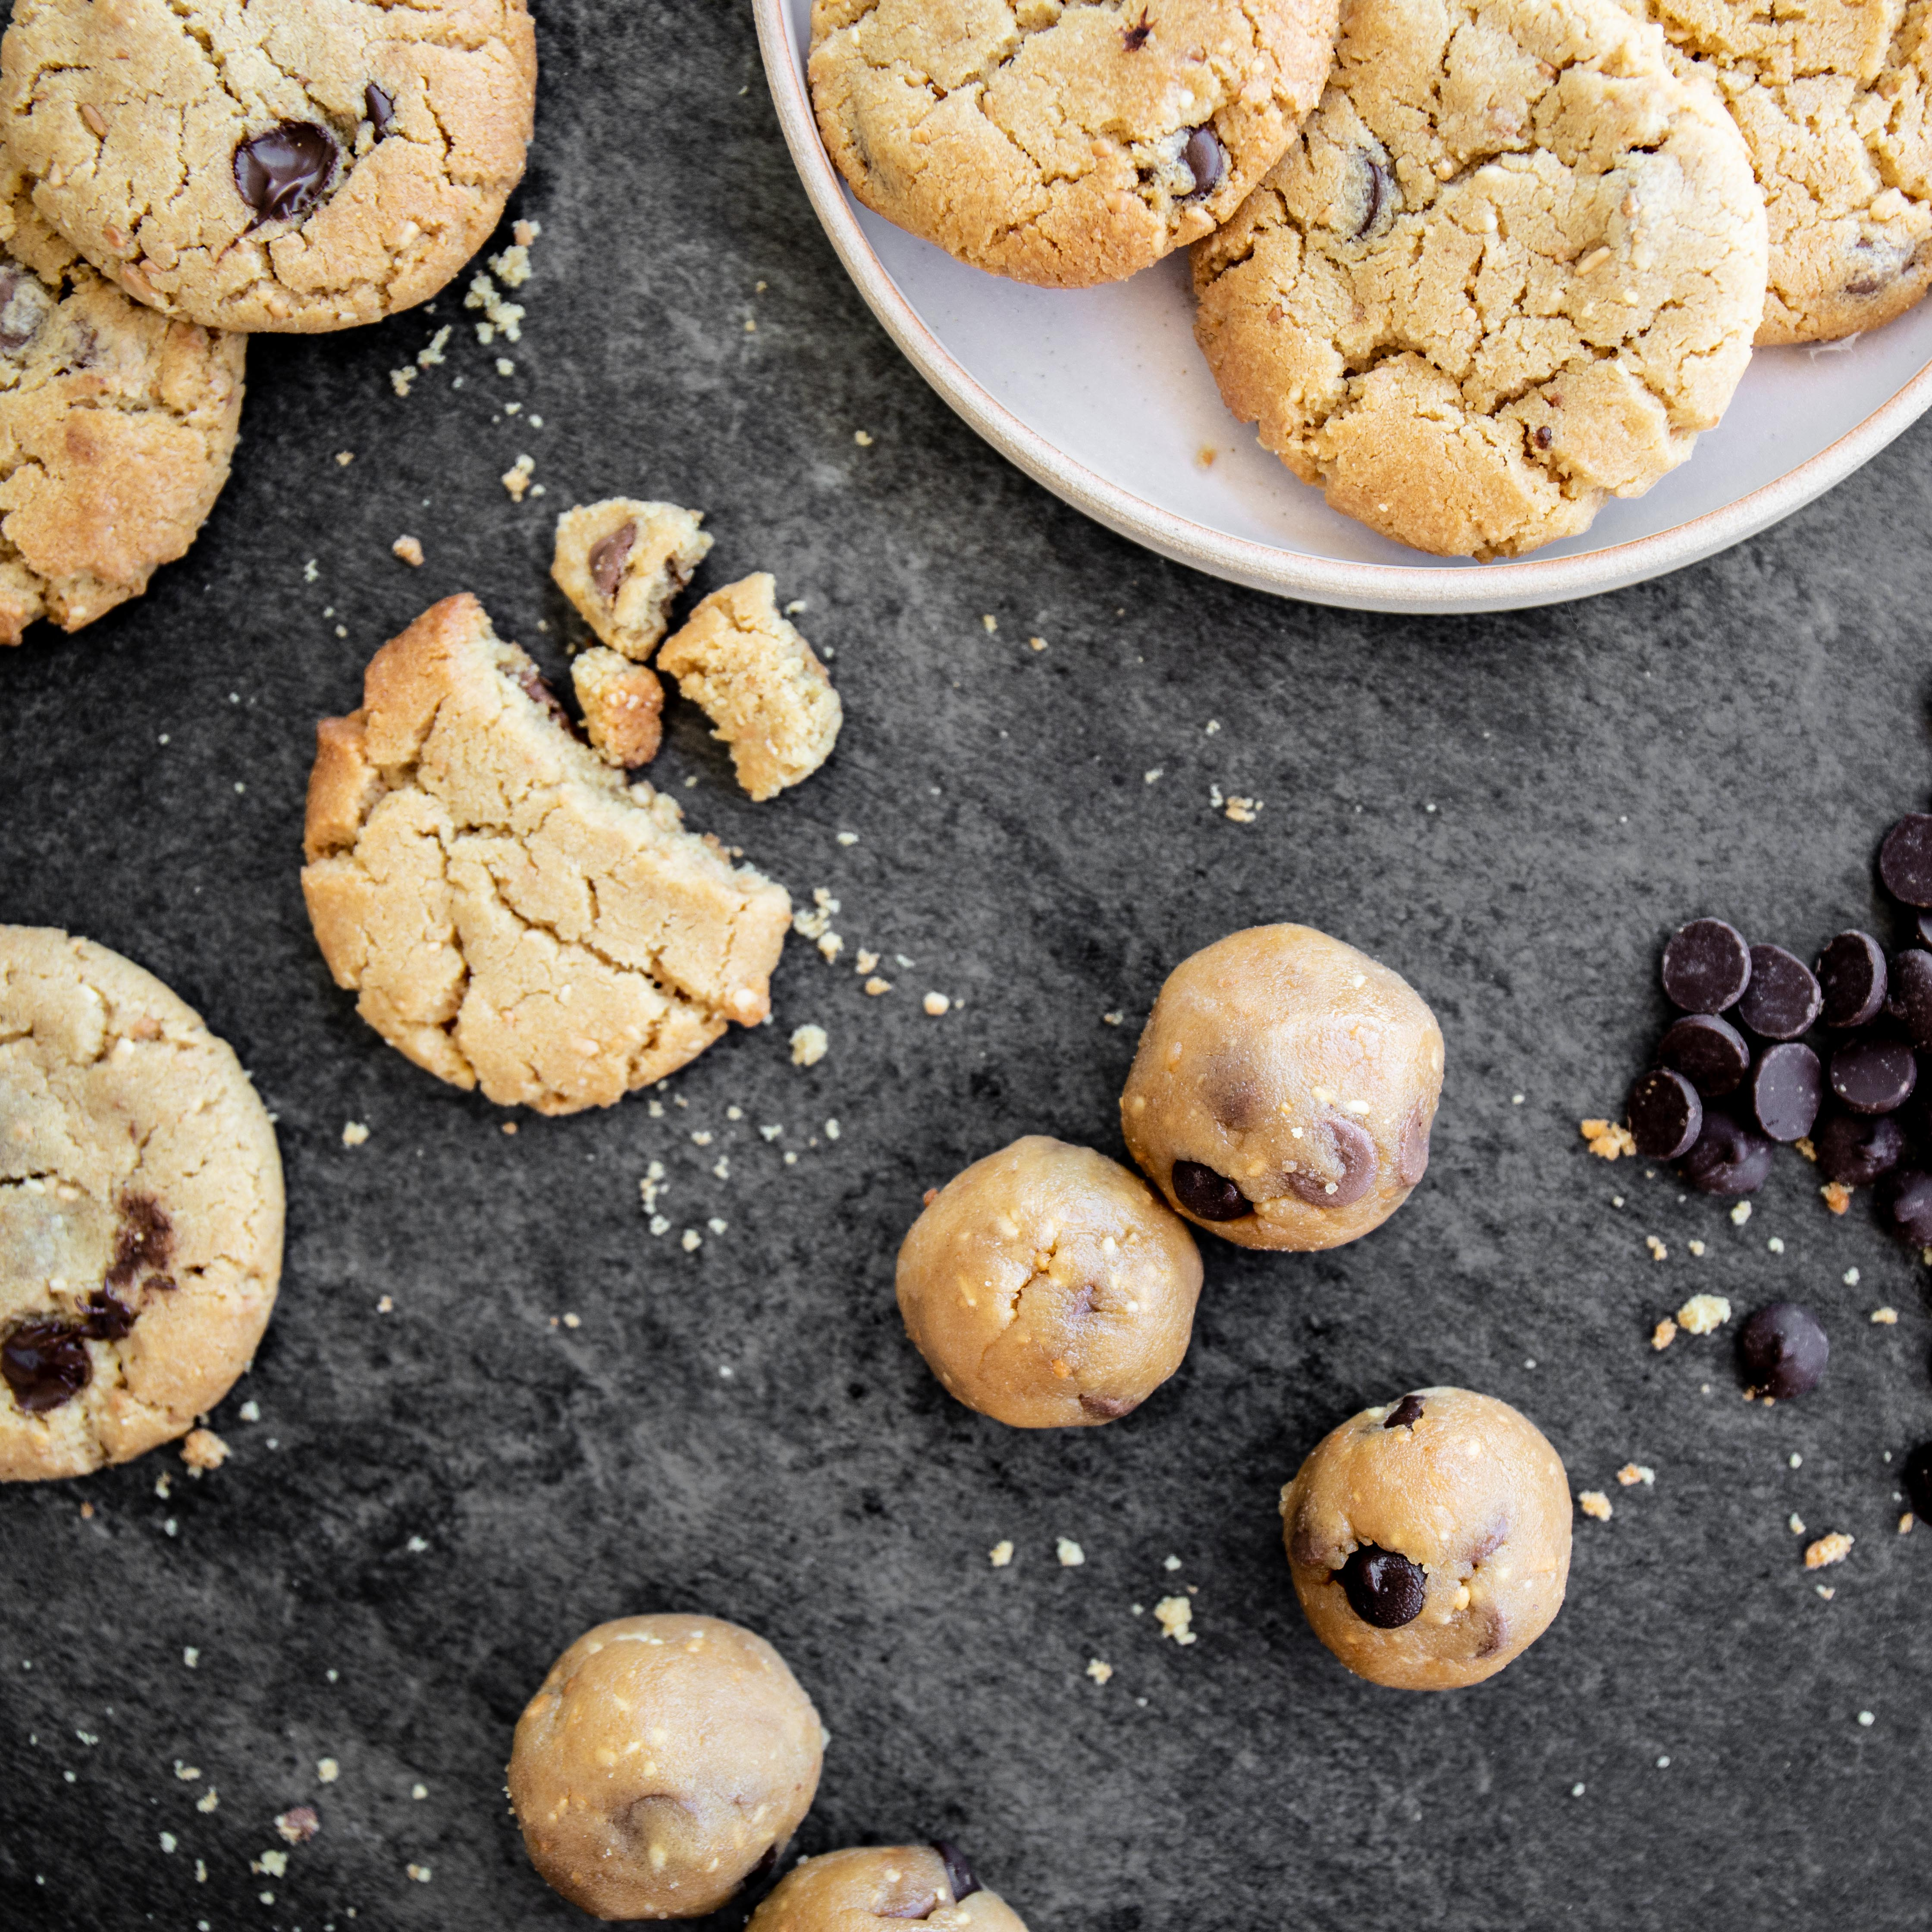 Peanut Butter Chocolate Chip Cookies - Recipe and Food Photography by Shika Finnemore, The Bellephant